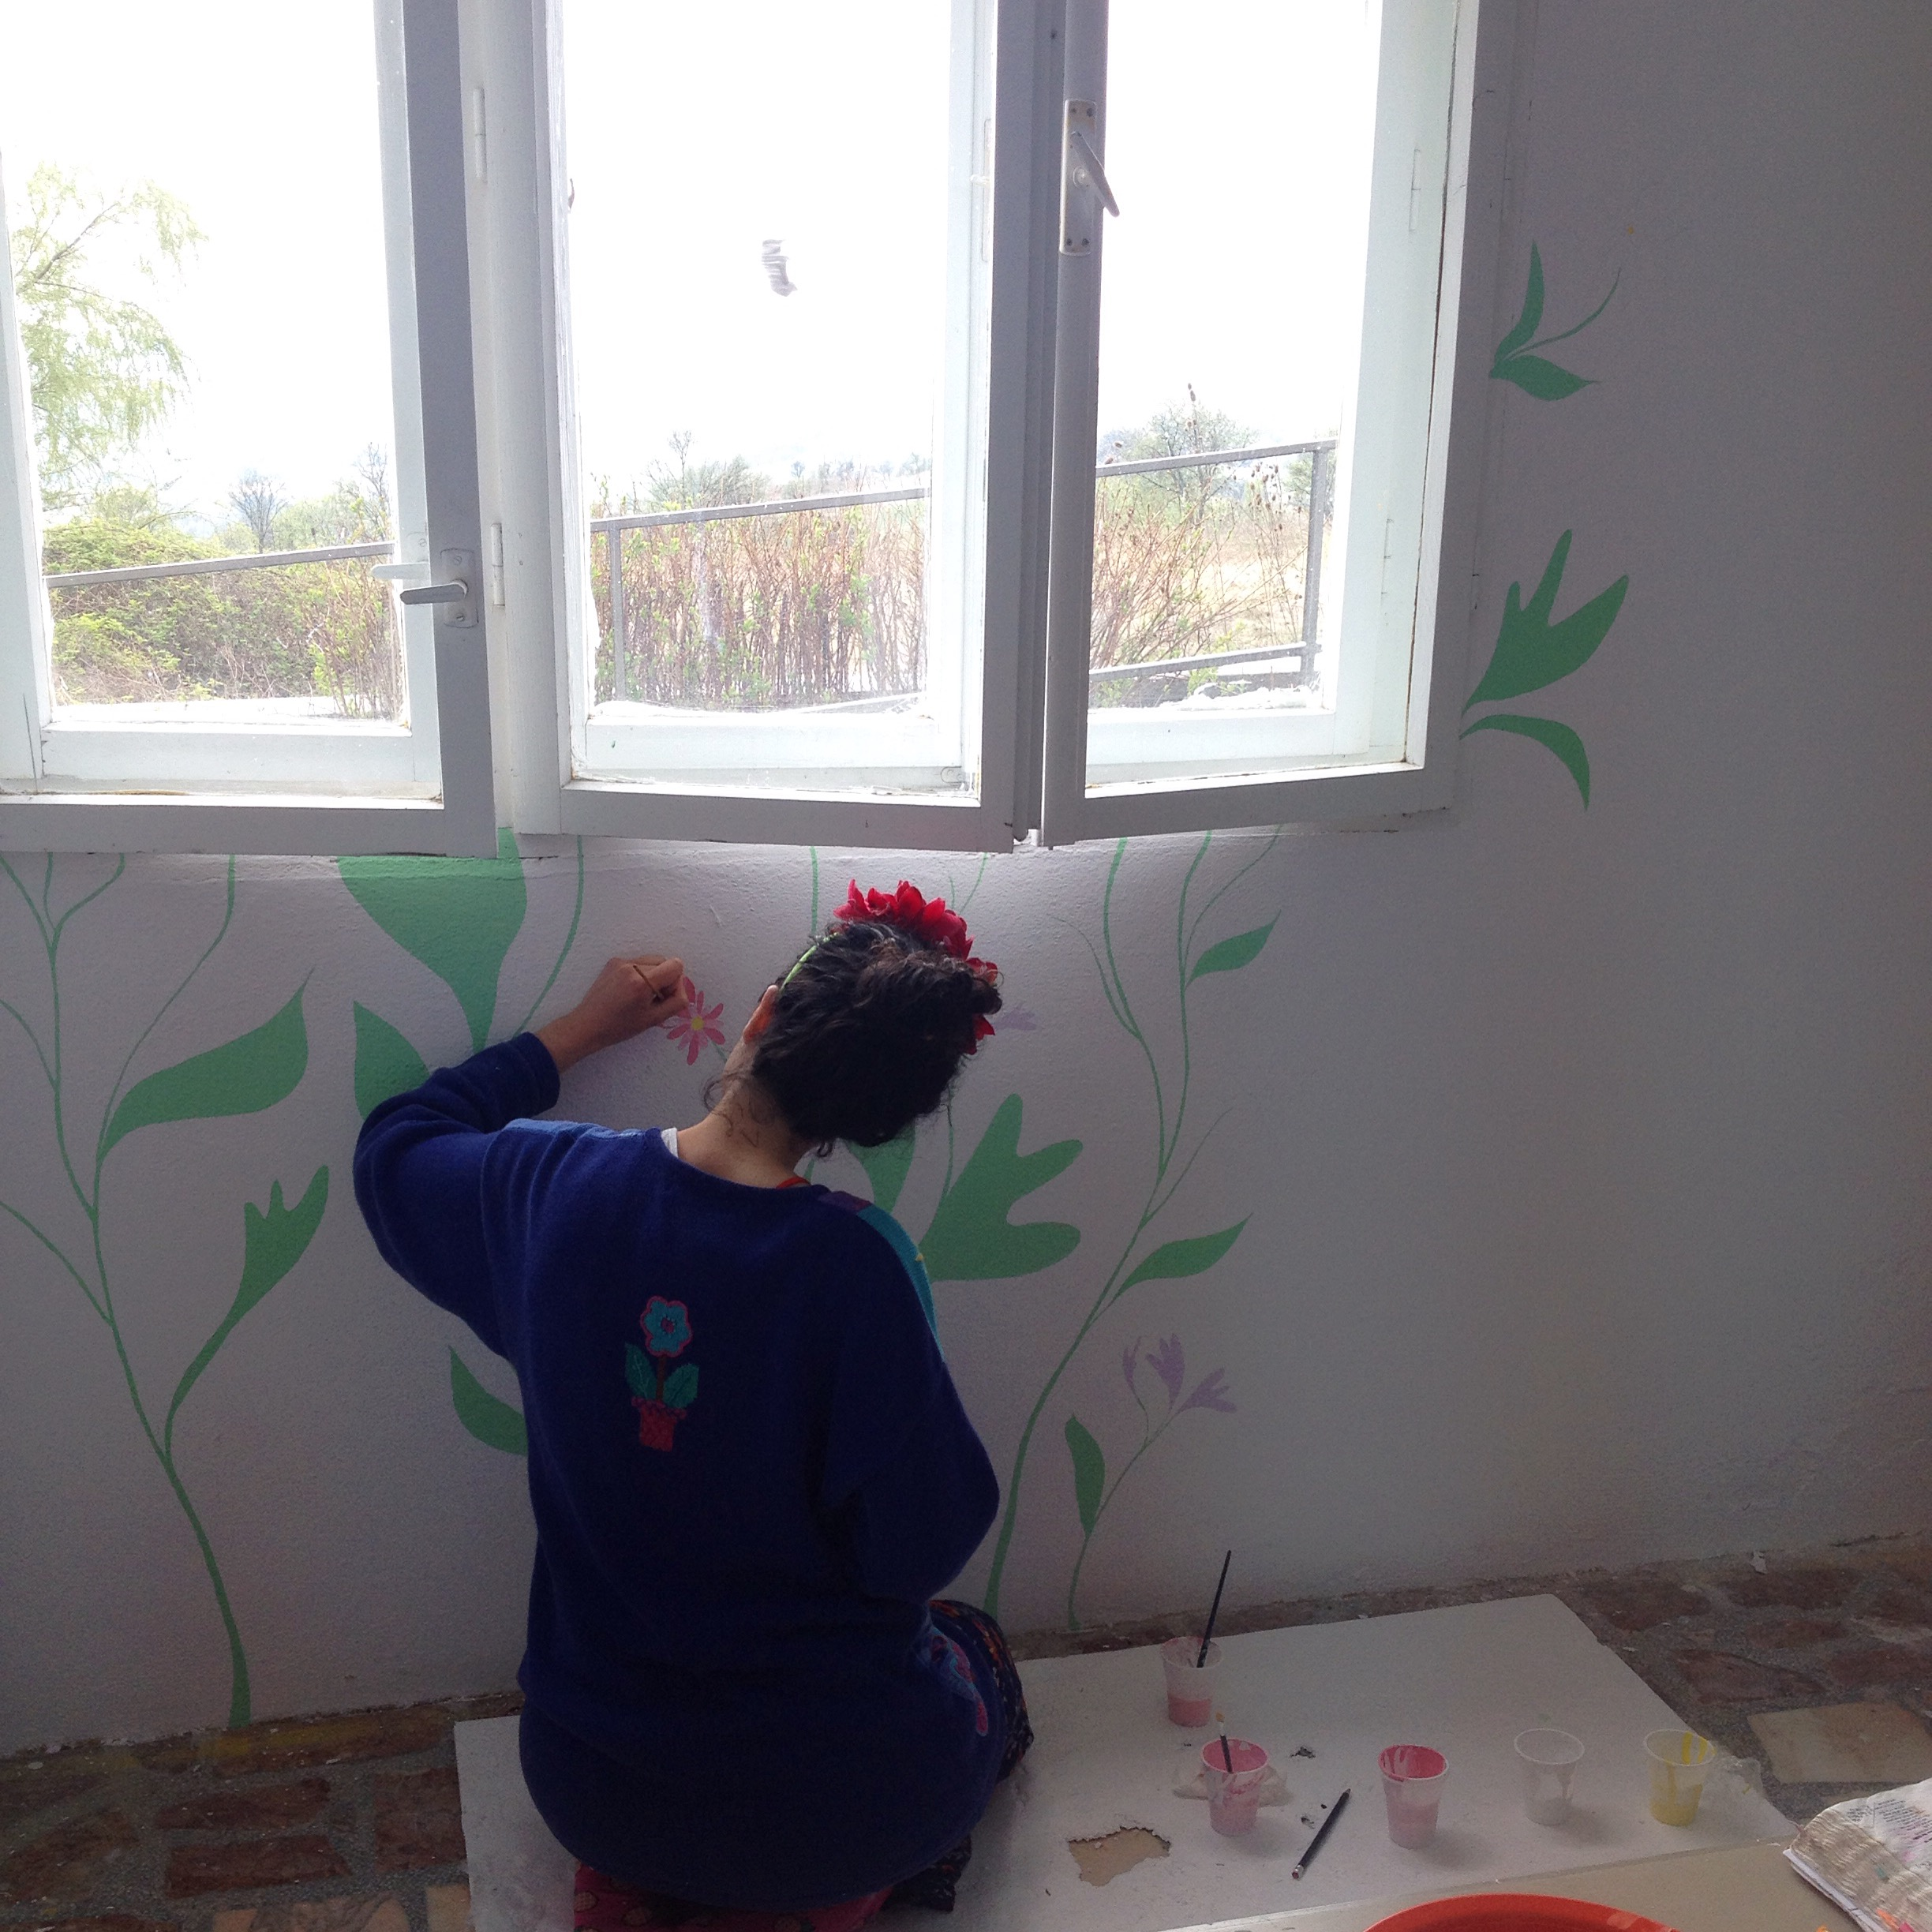 painting a garden mural in the prayer room at a retreat centre for disabled young people in Romania.